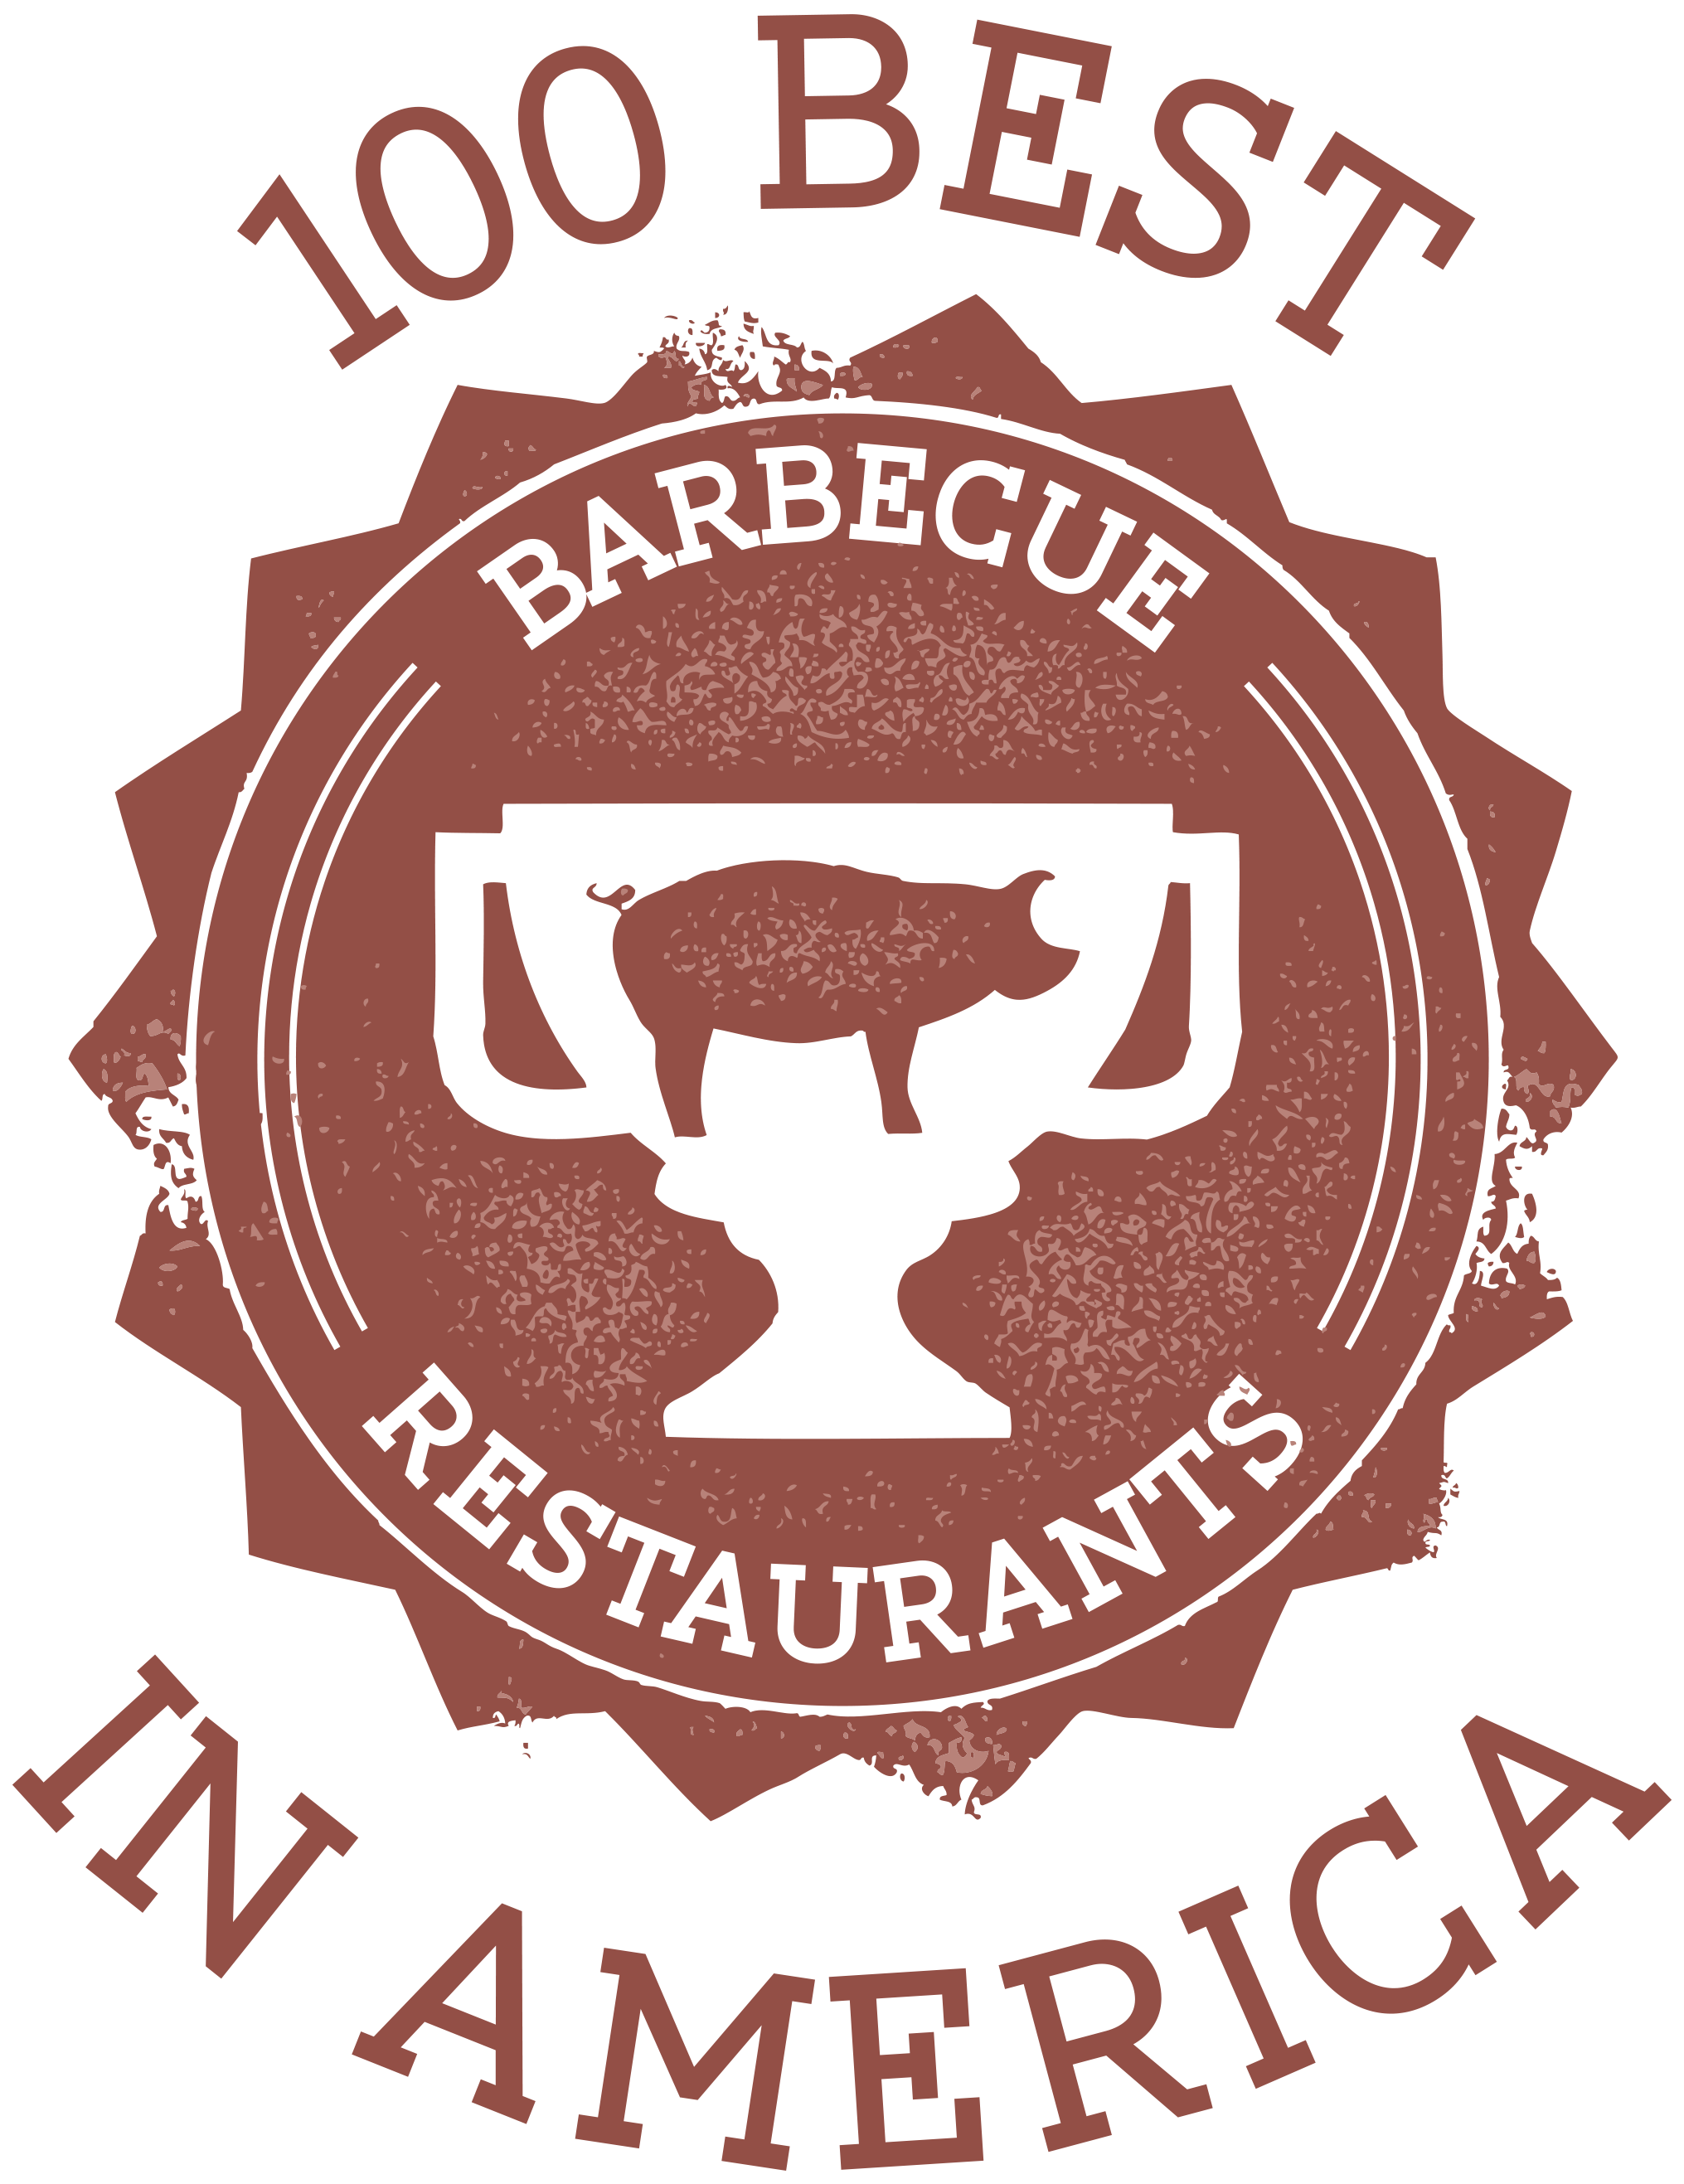 The 100 Best Barbecue Restaurants In America Puckett S Gro Is On List